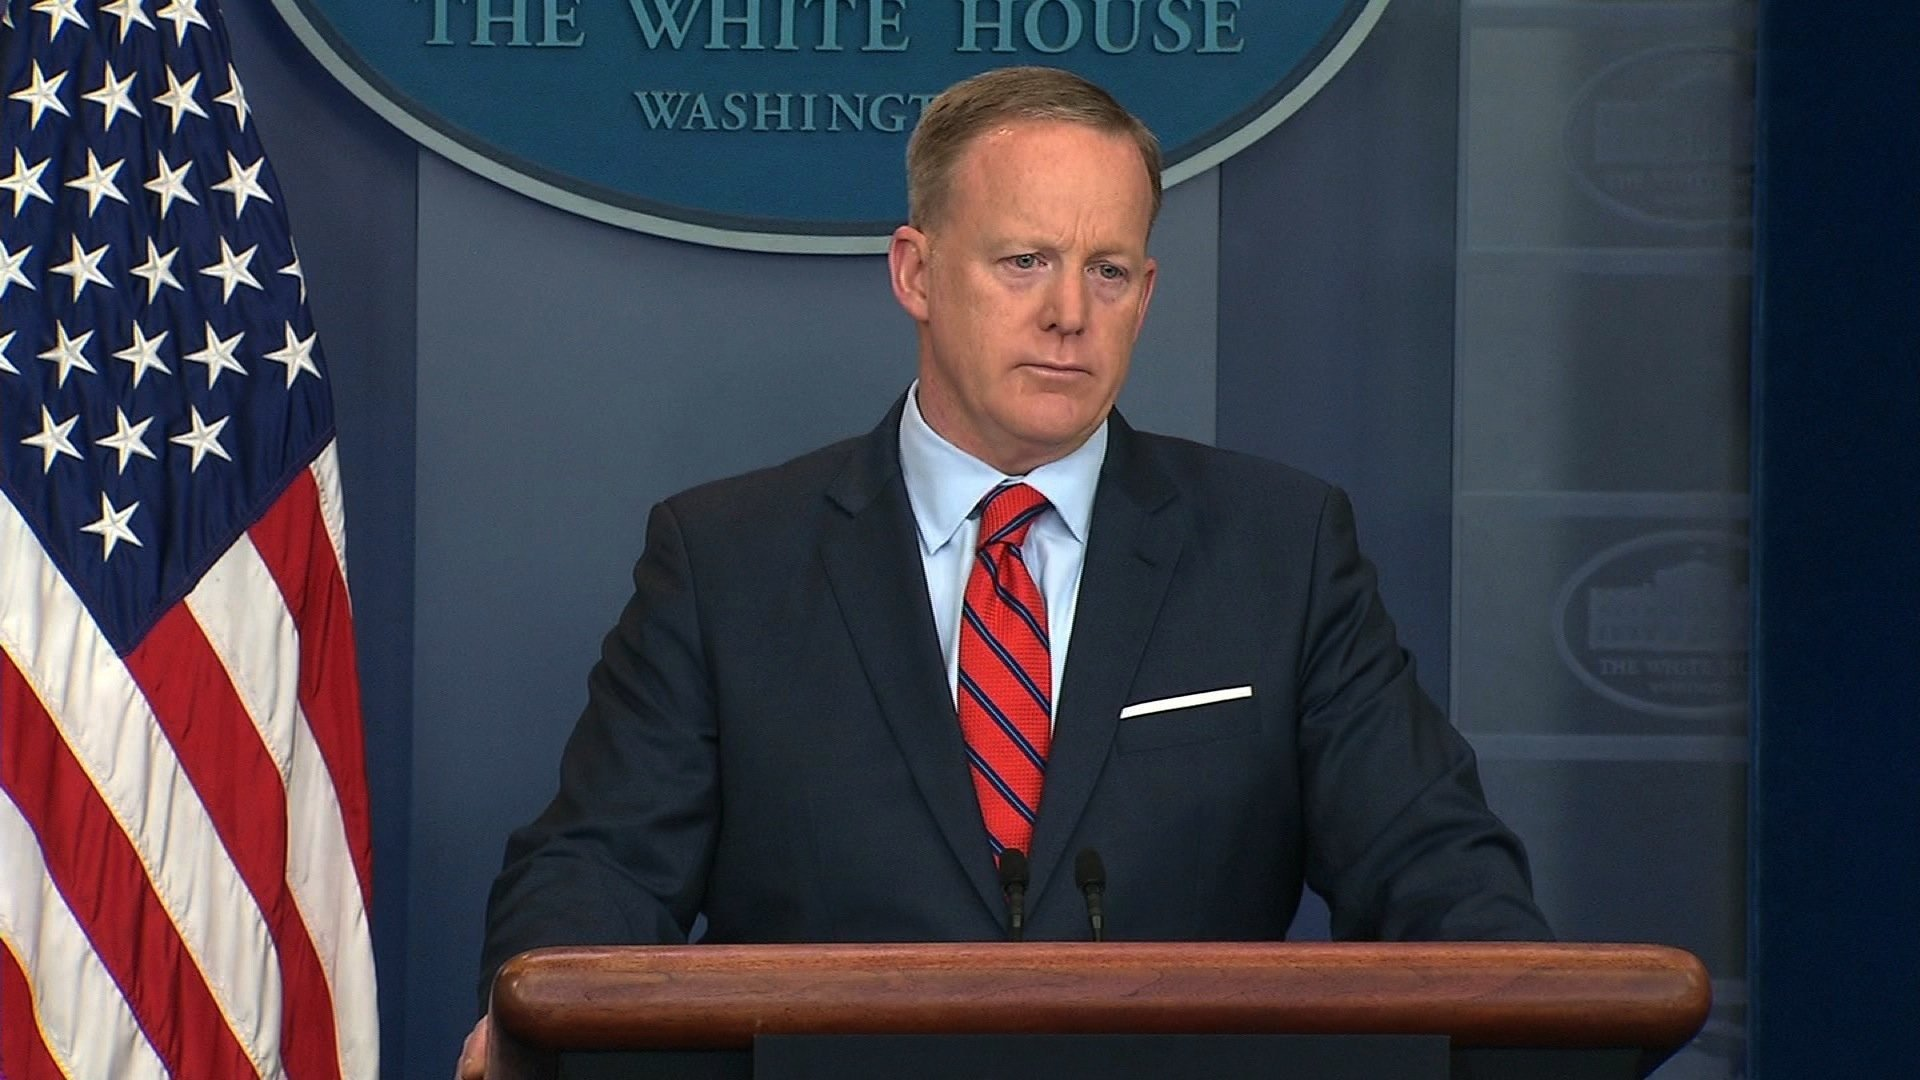 Howard Stern calls Sean Spicer 'embarrassing' but 'entertaining as hell'